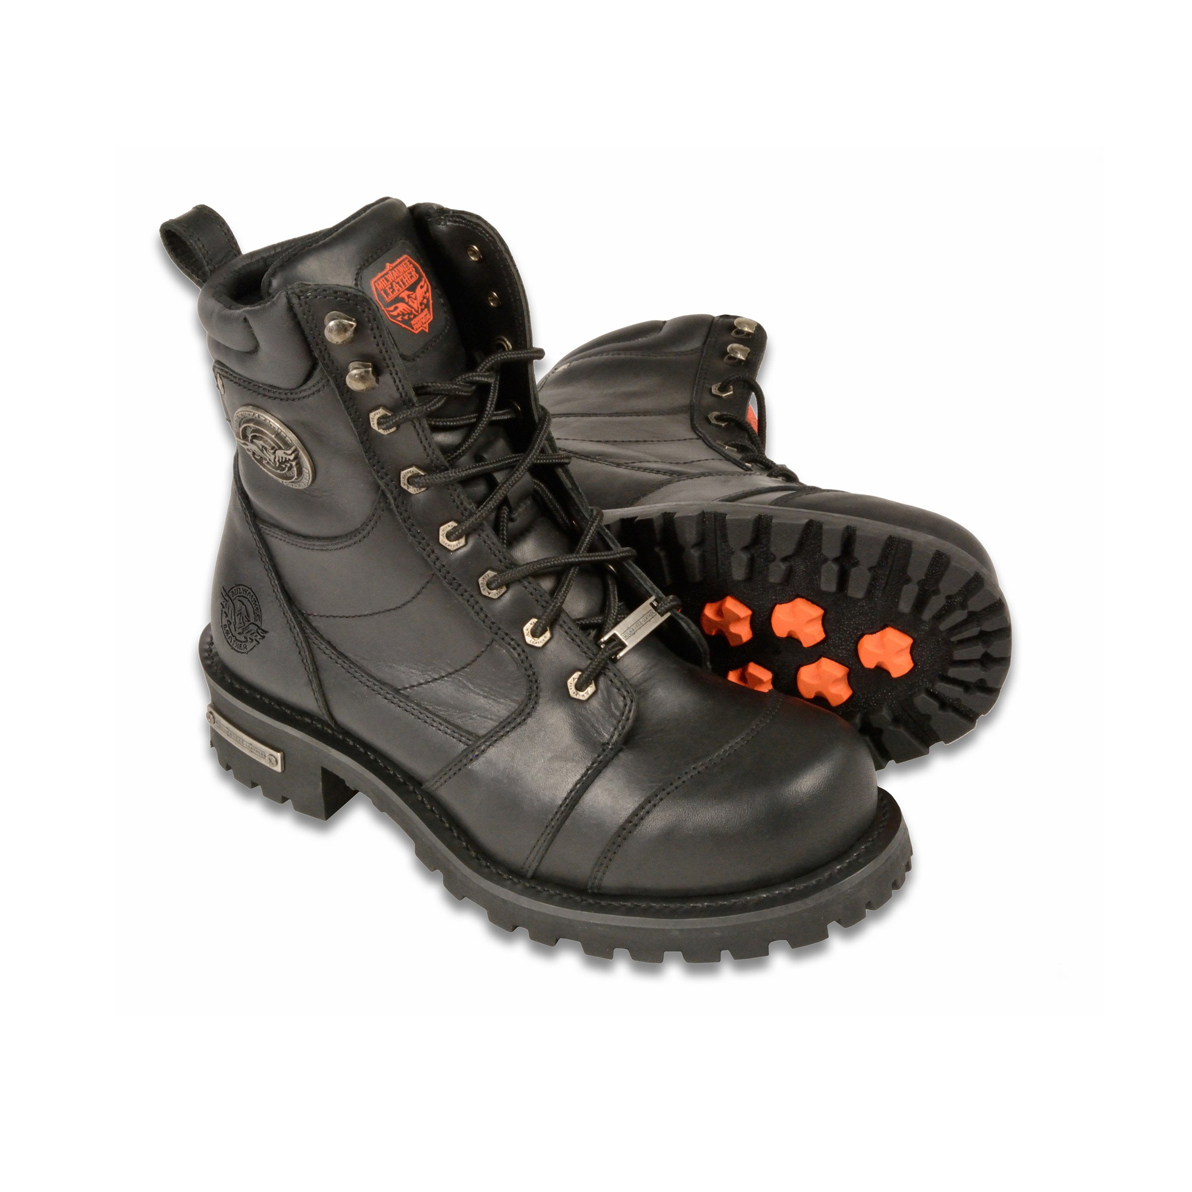 51e8c97f8a8a WIDE MEN S MOTORCYCLE BOOTS PURE LEATHER 8 INCH CLASSIC LOGGER ...